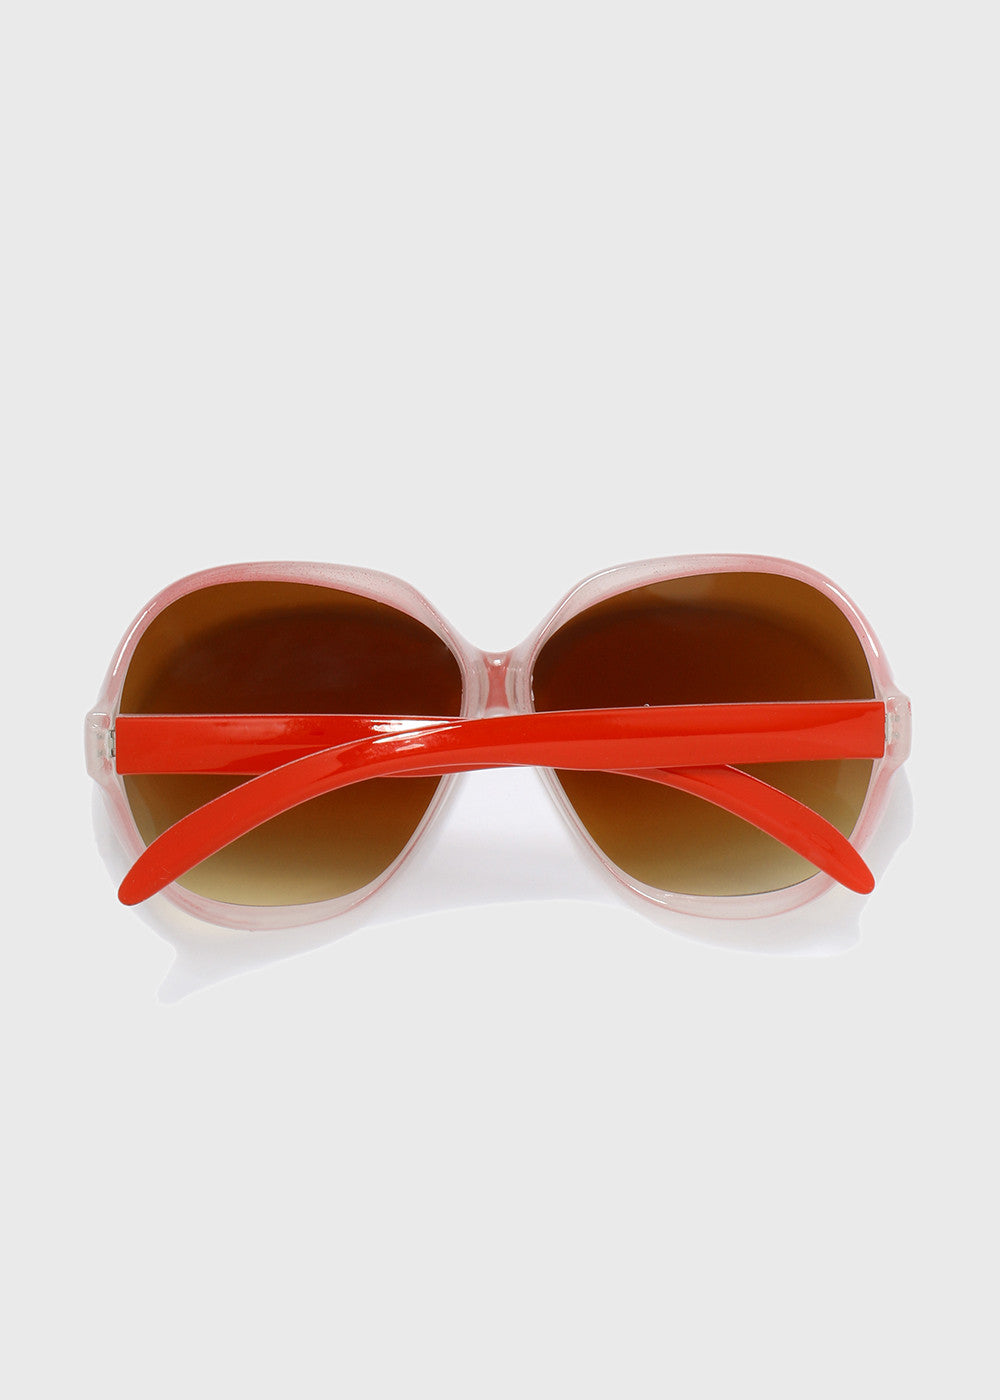 Vintage Oversize Round Sunglasses- Red/Clear